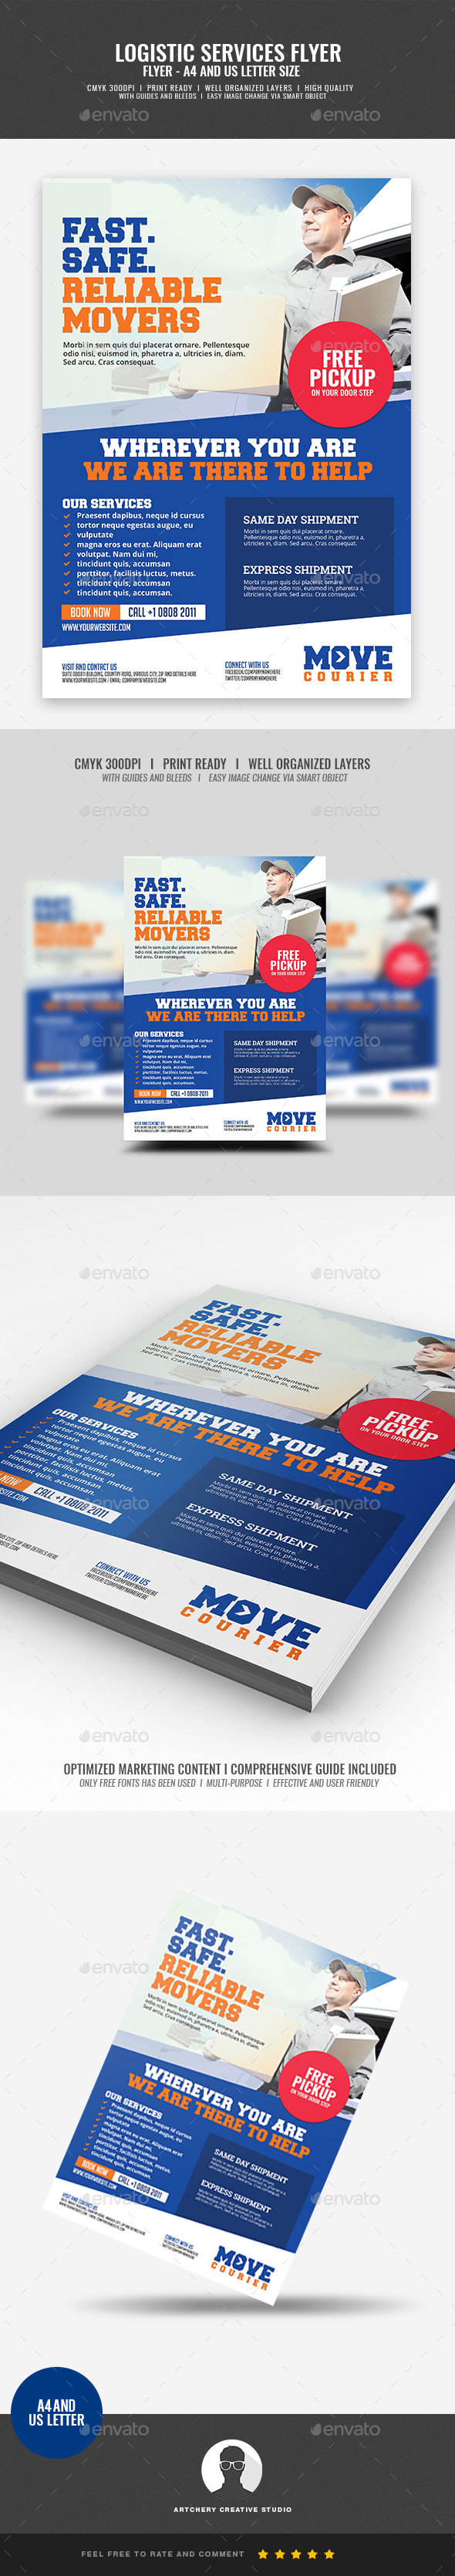 Logistic Services Flyer - Commerce Flyers